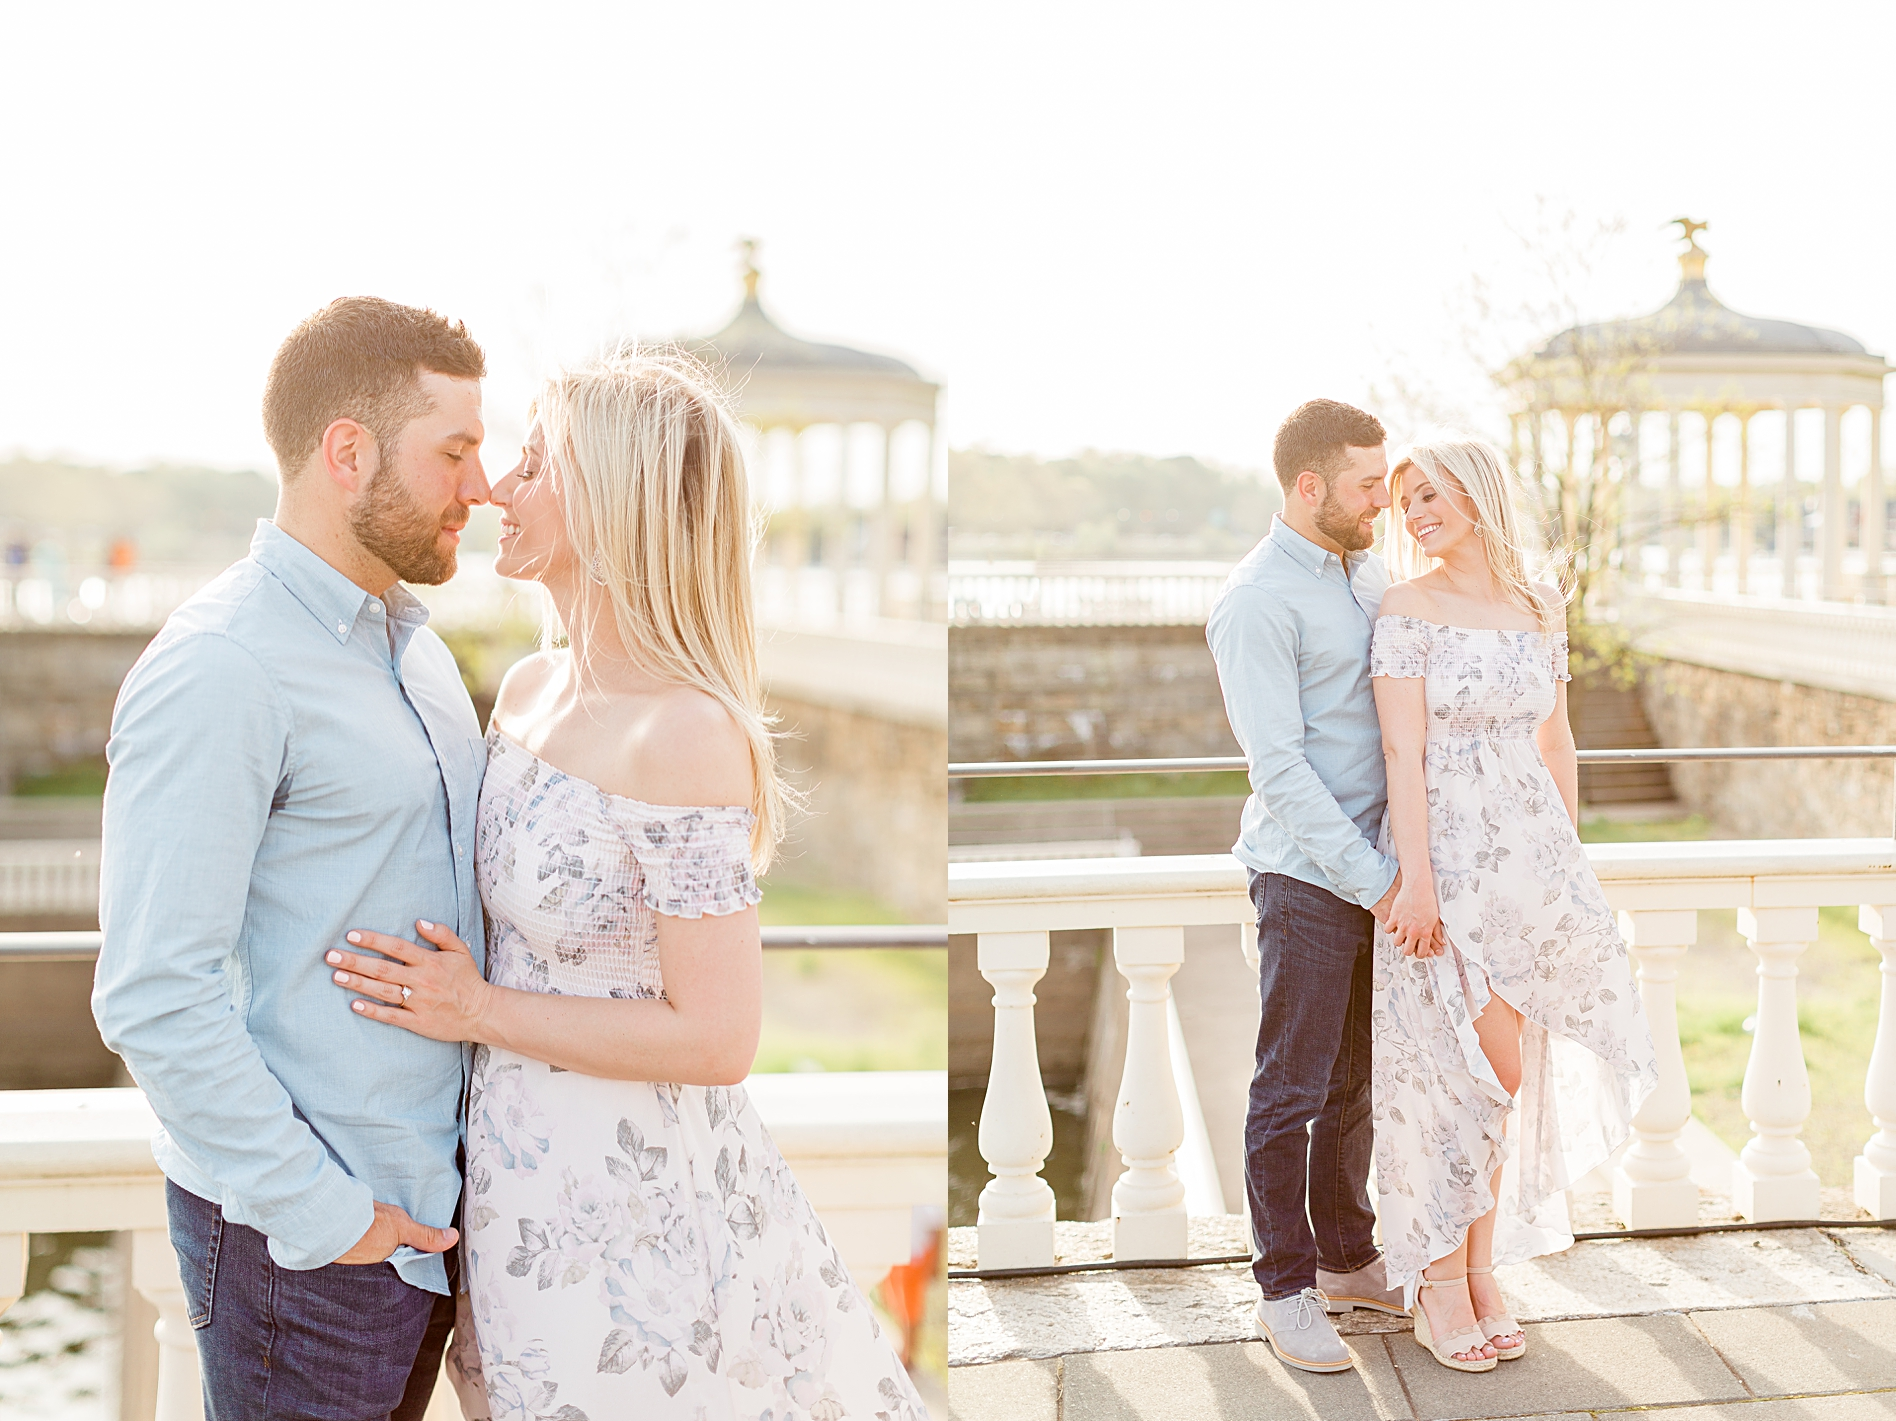 Water works Engagement Session